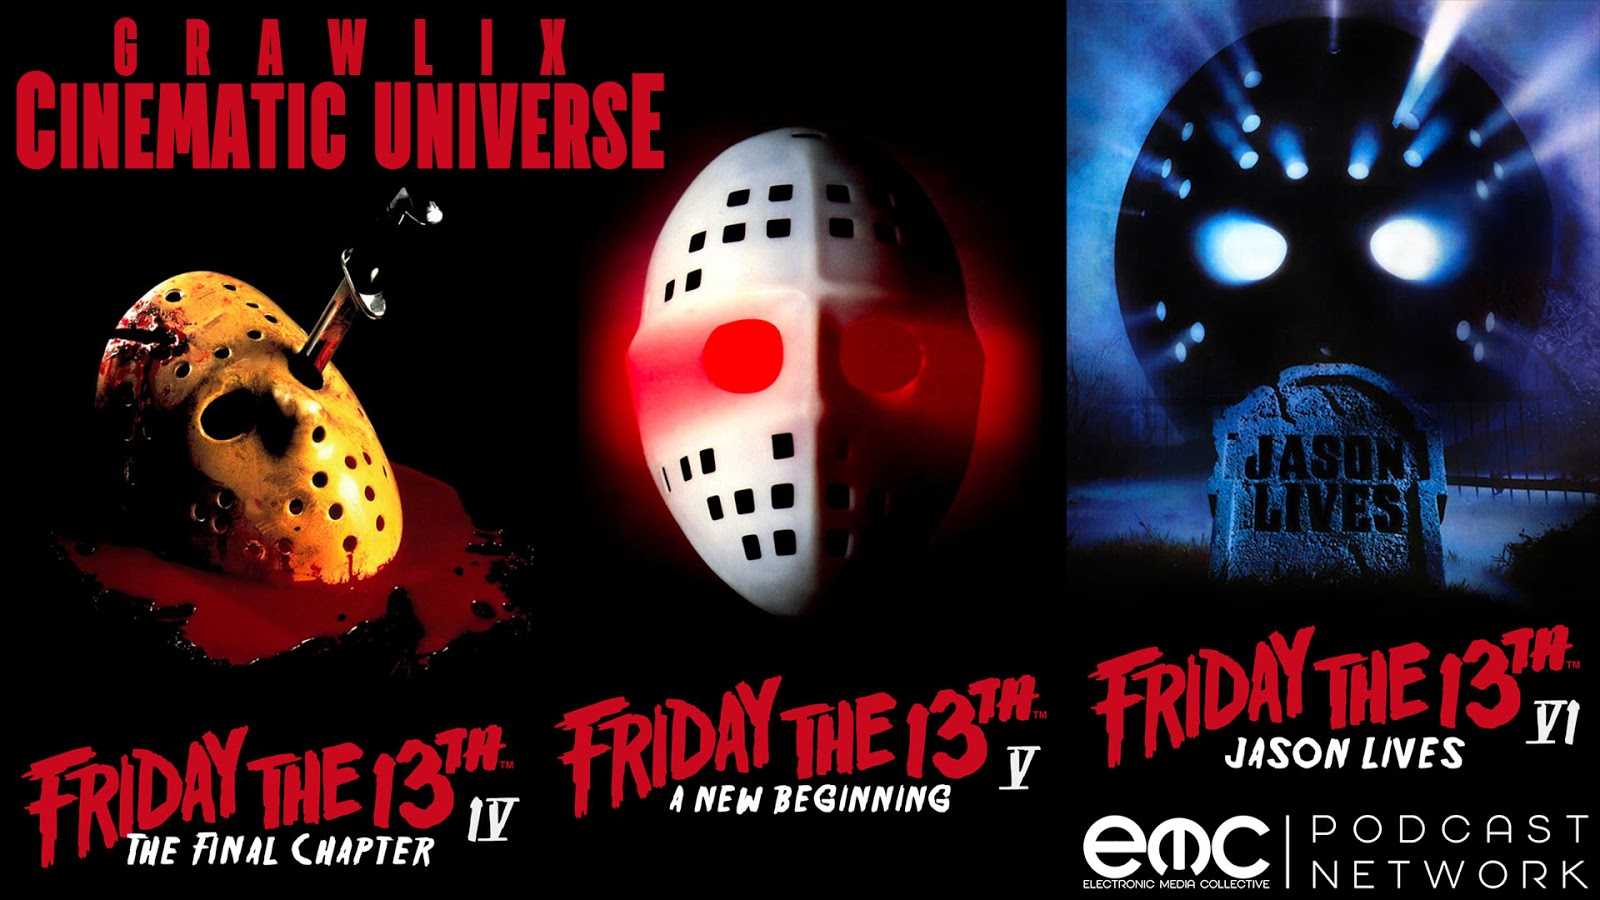 Friday the 13th Special Part II